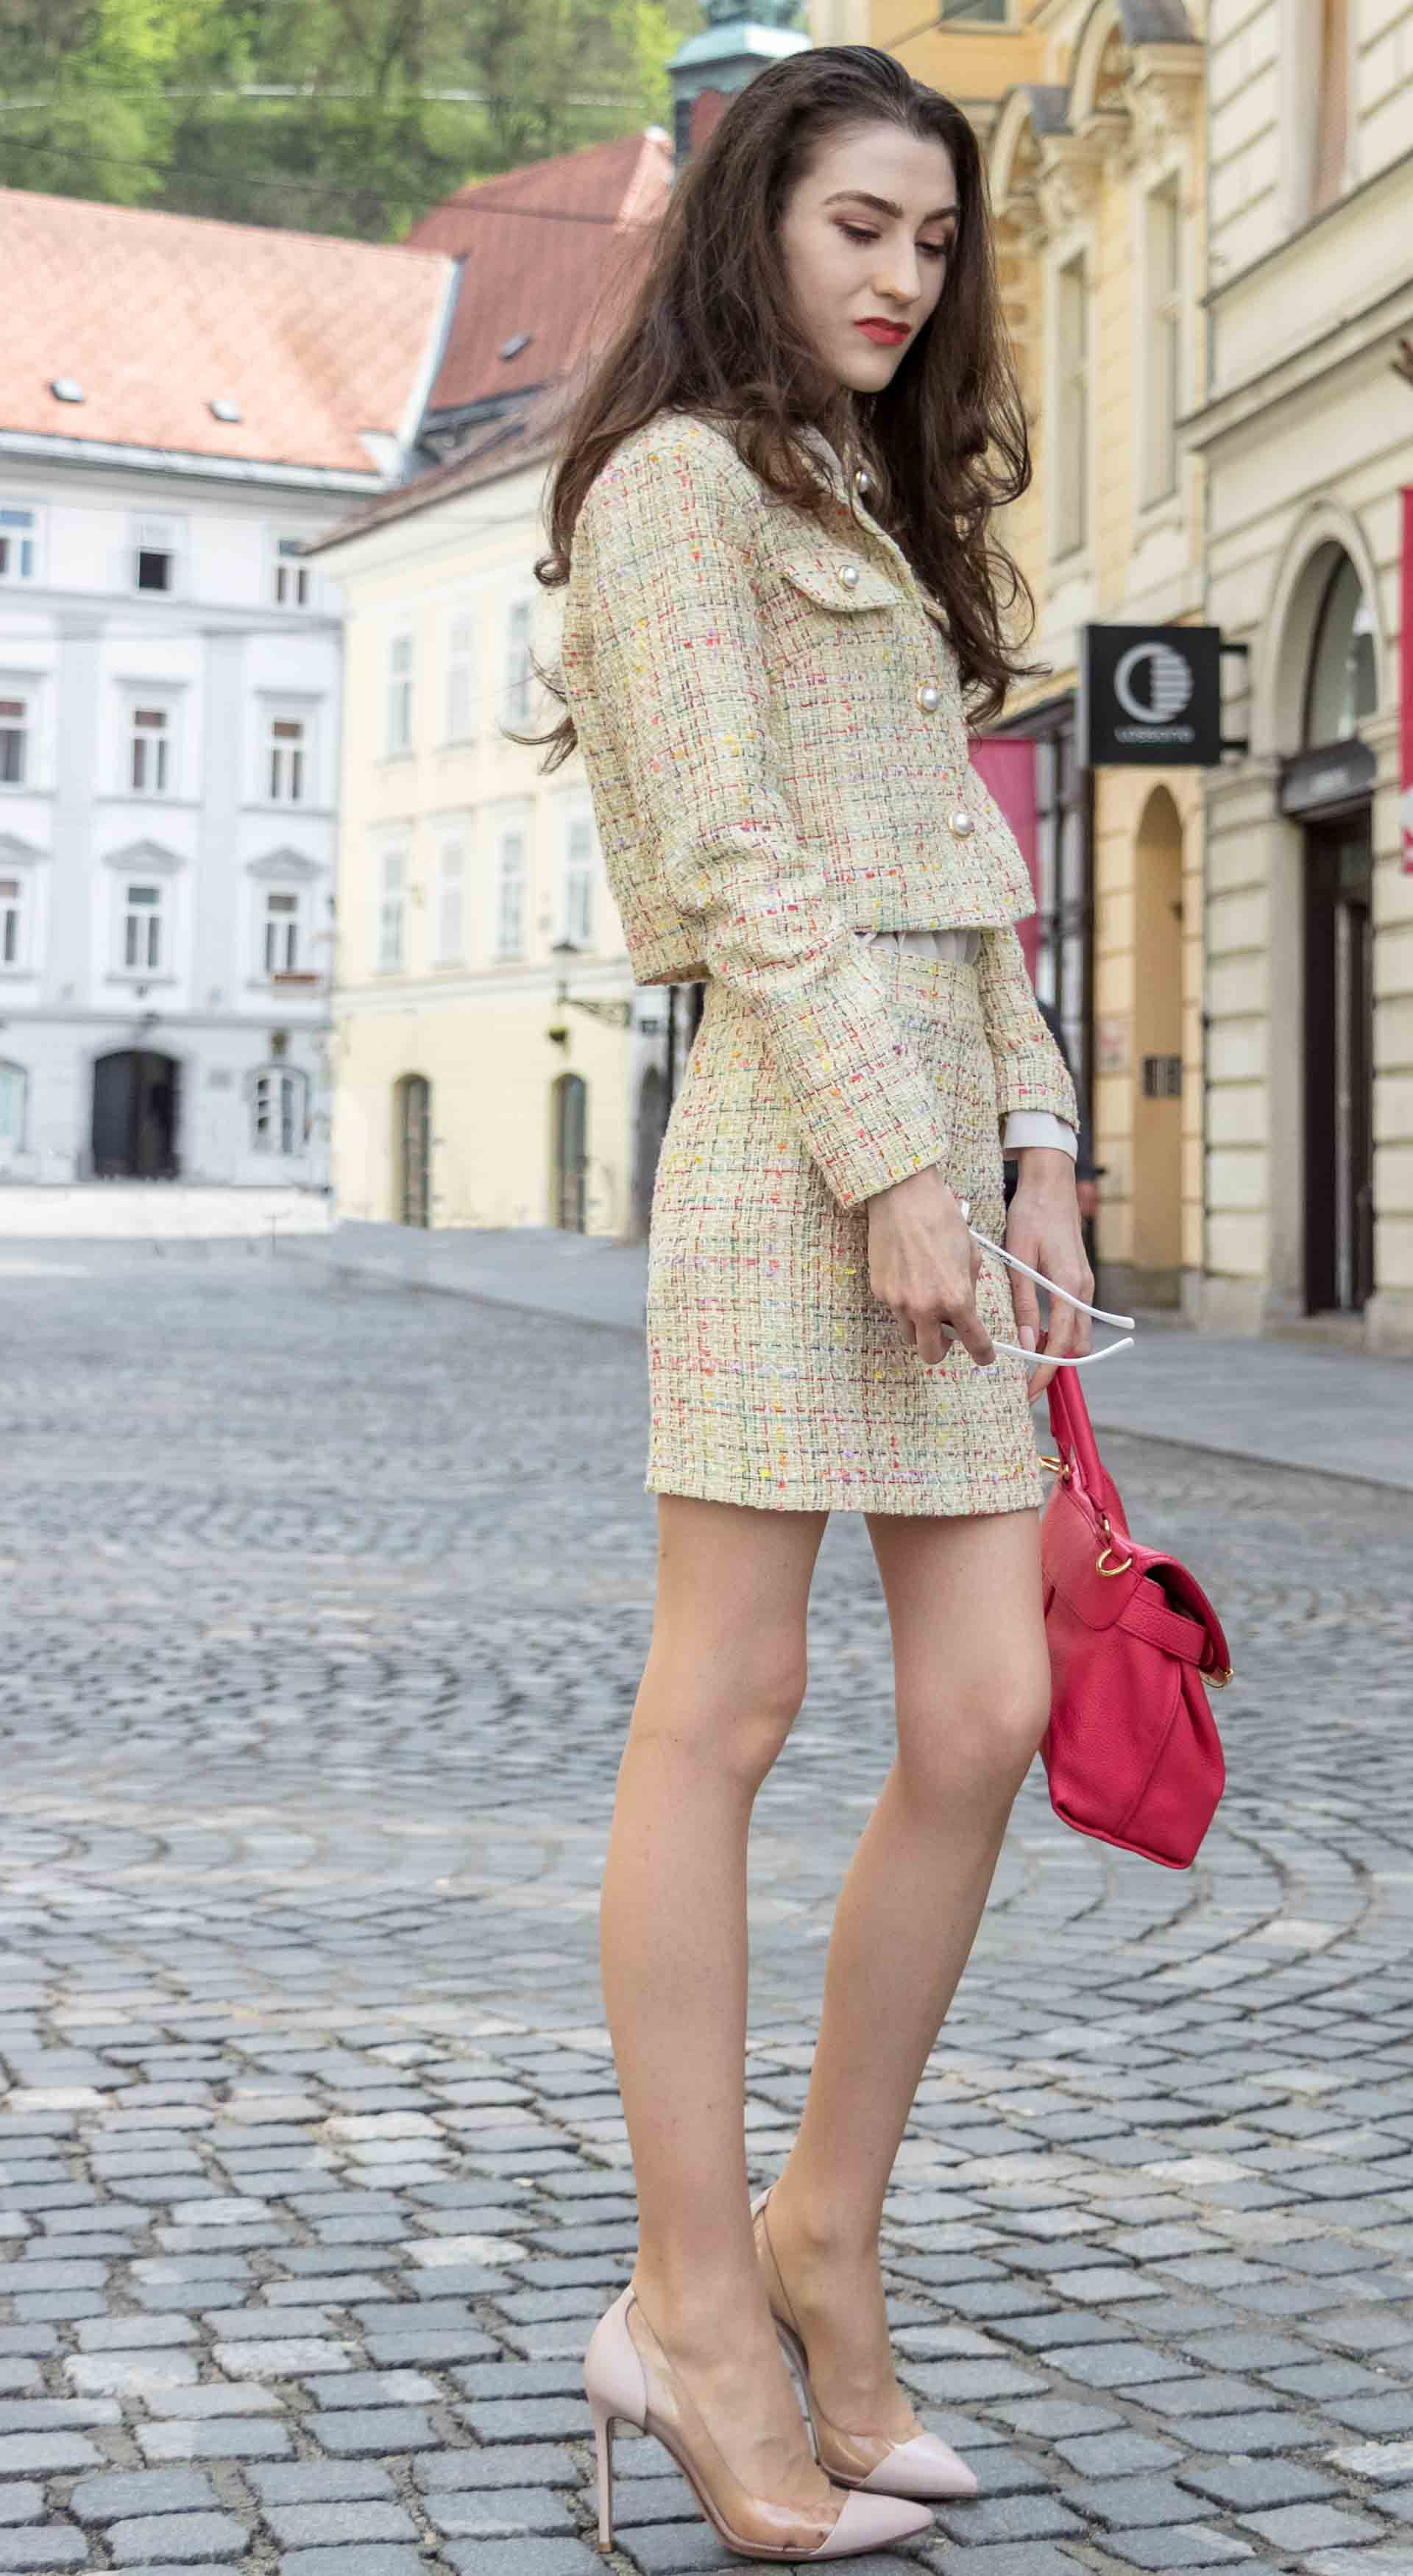 Fashion Blogger Veronika Lipar of Brunette from Wall Street dressed in Storets yellow tweed mini skirt suit, Gianvito Rossi plexi pumps, See by Chloe pink top handle bag, Adam Selman x Lespecs white Lolita sunglasses standing on the street in Ljubljana